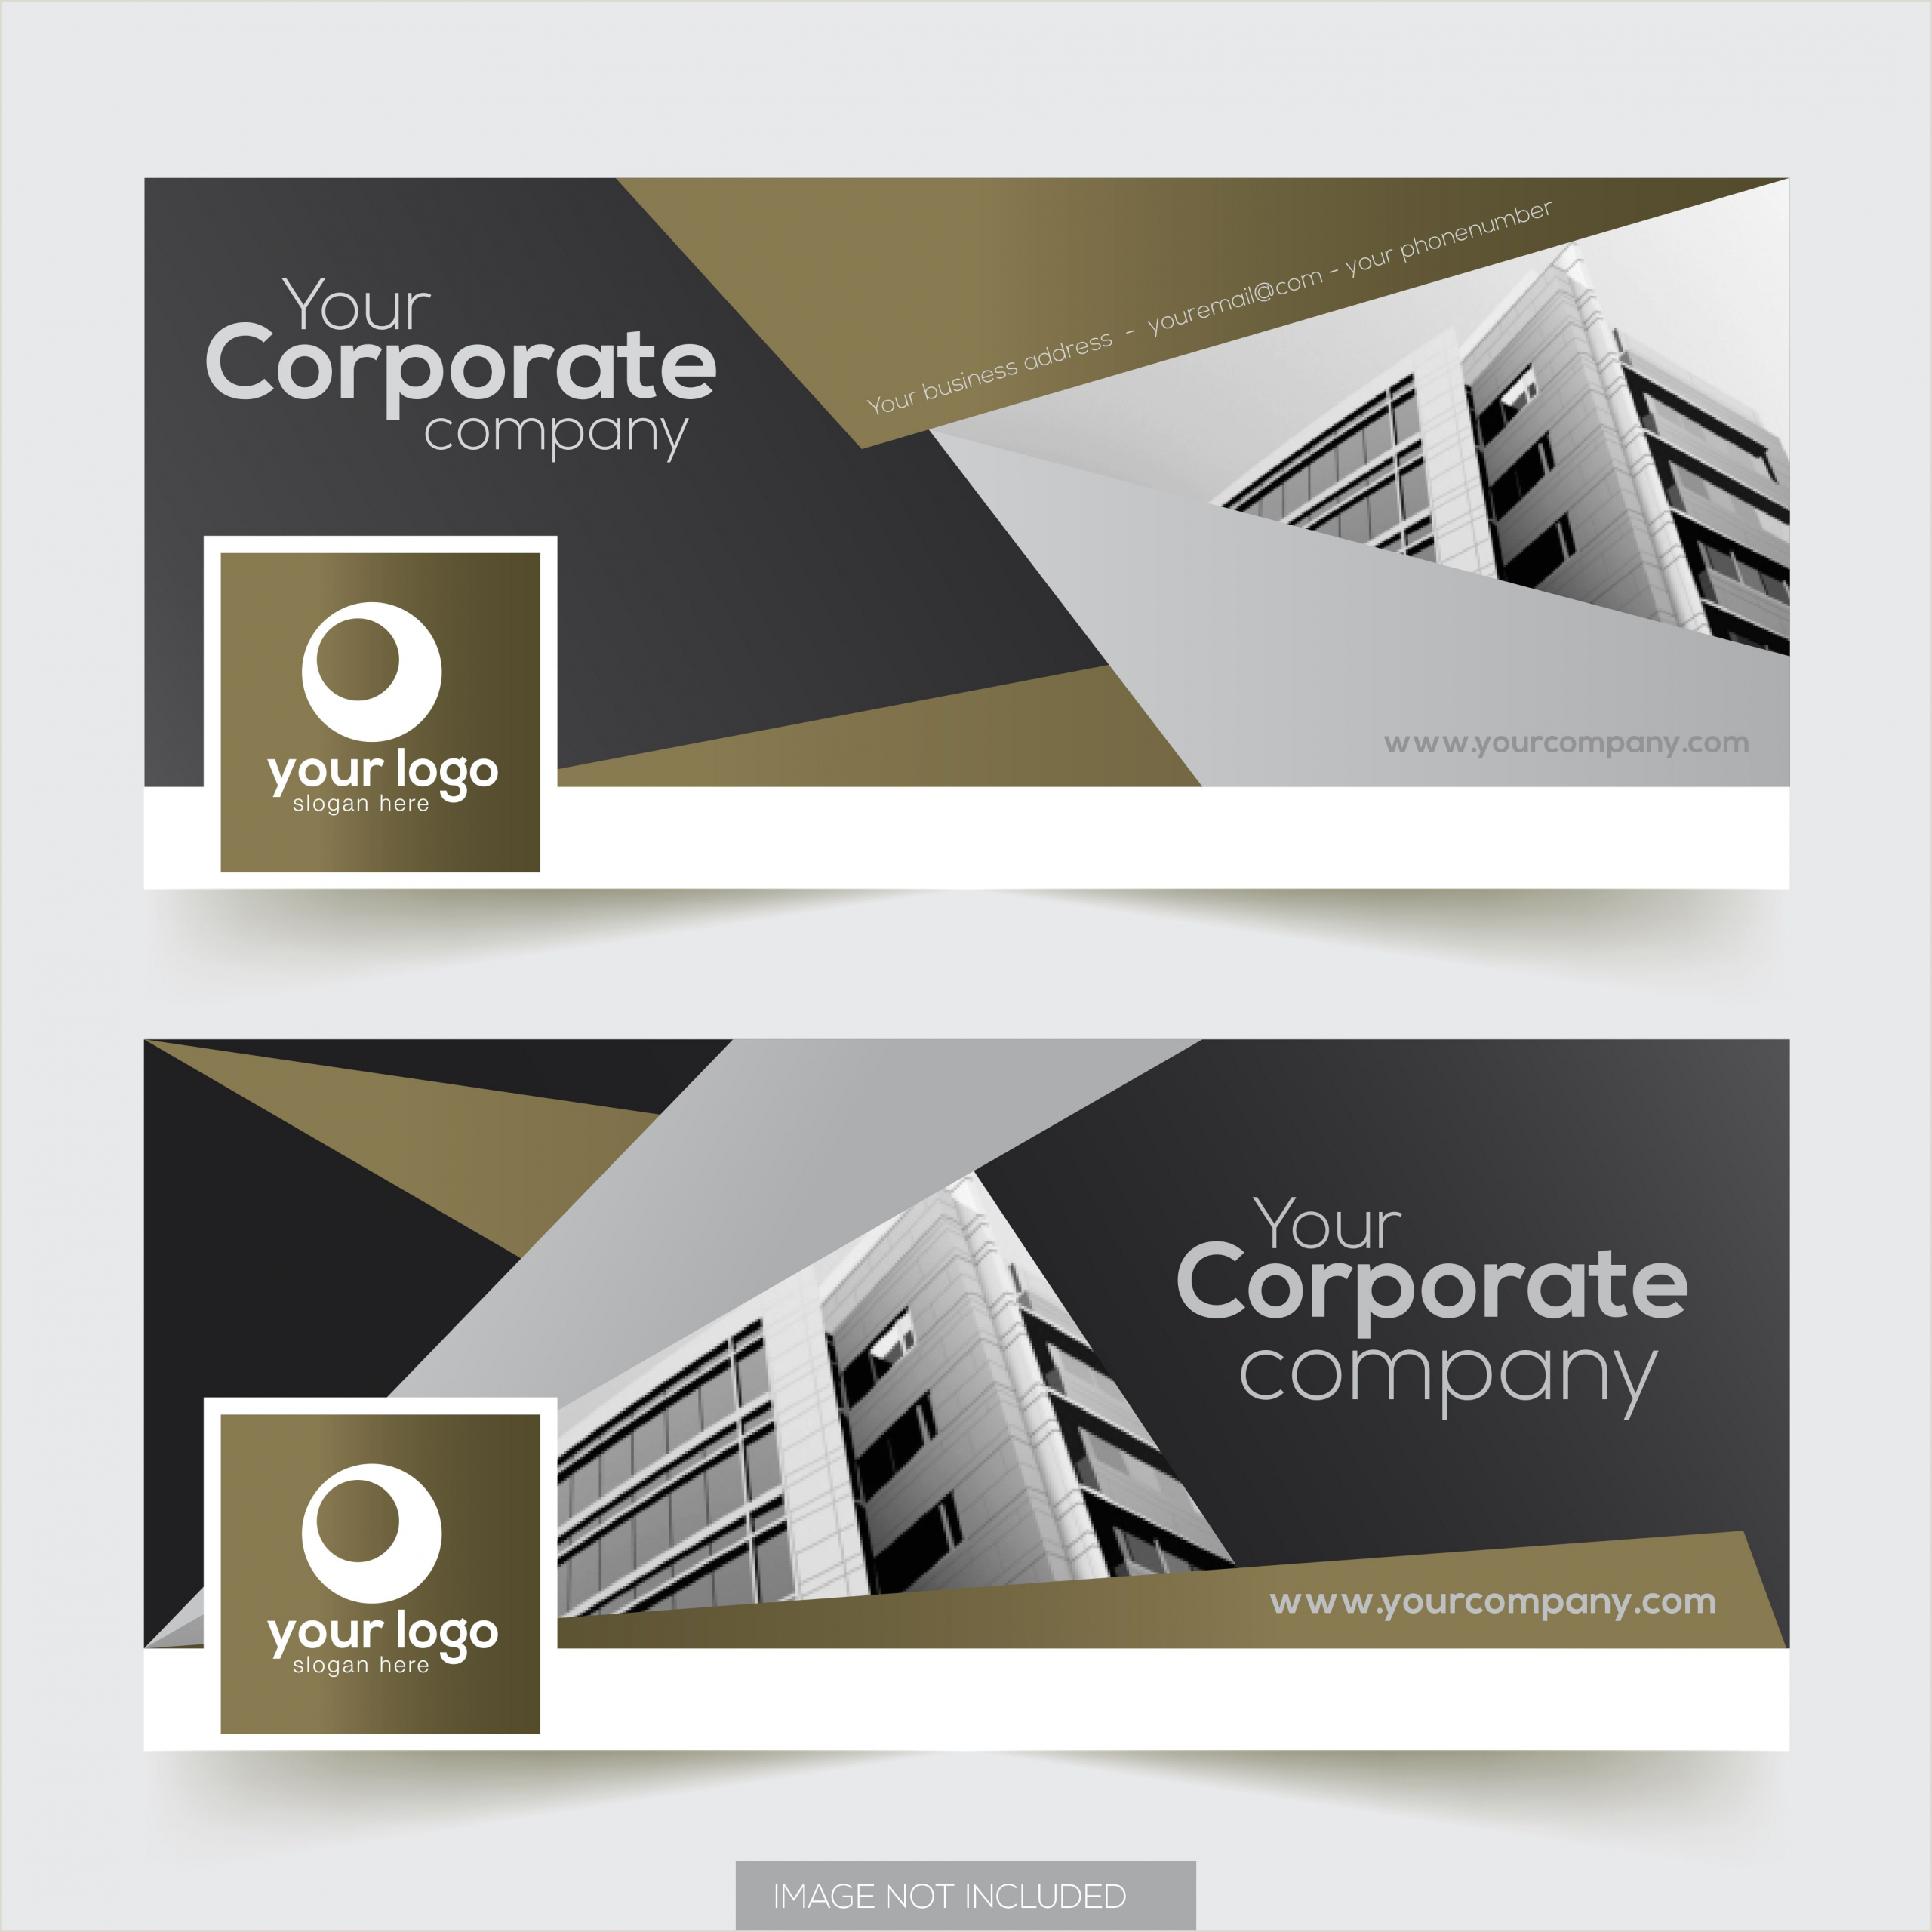 Social Media Marketing Business Cards Corporaate Cover Timeline Cover Corporate